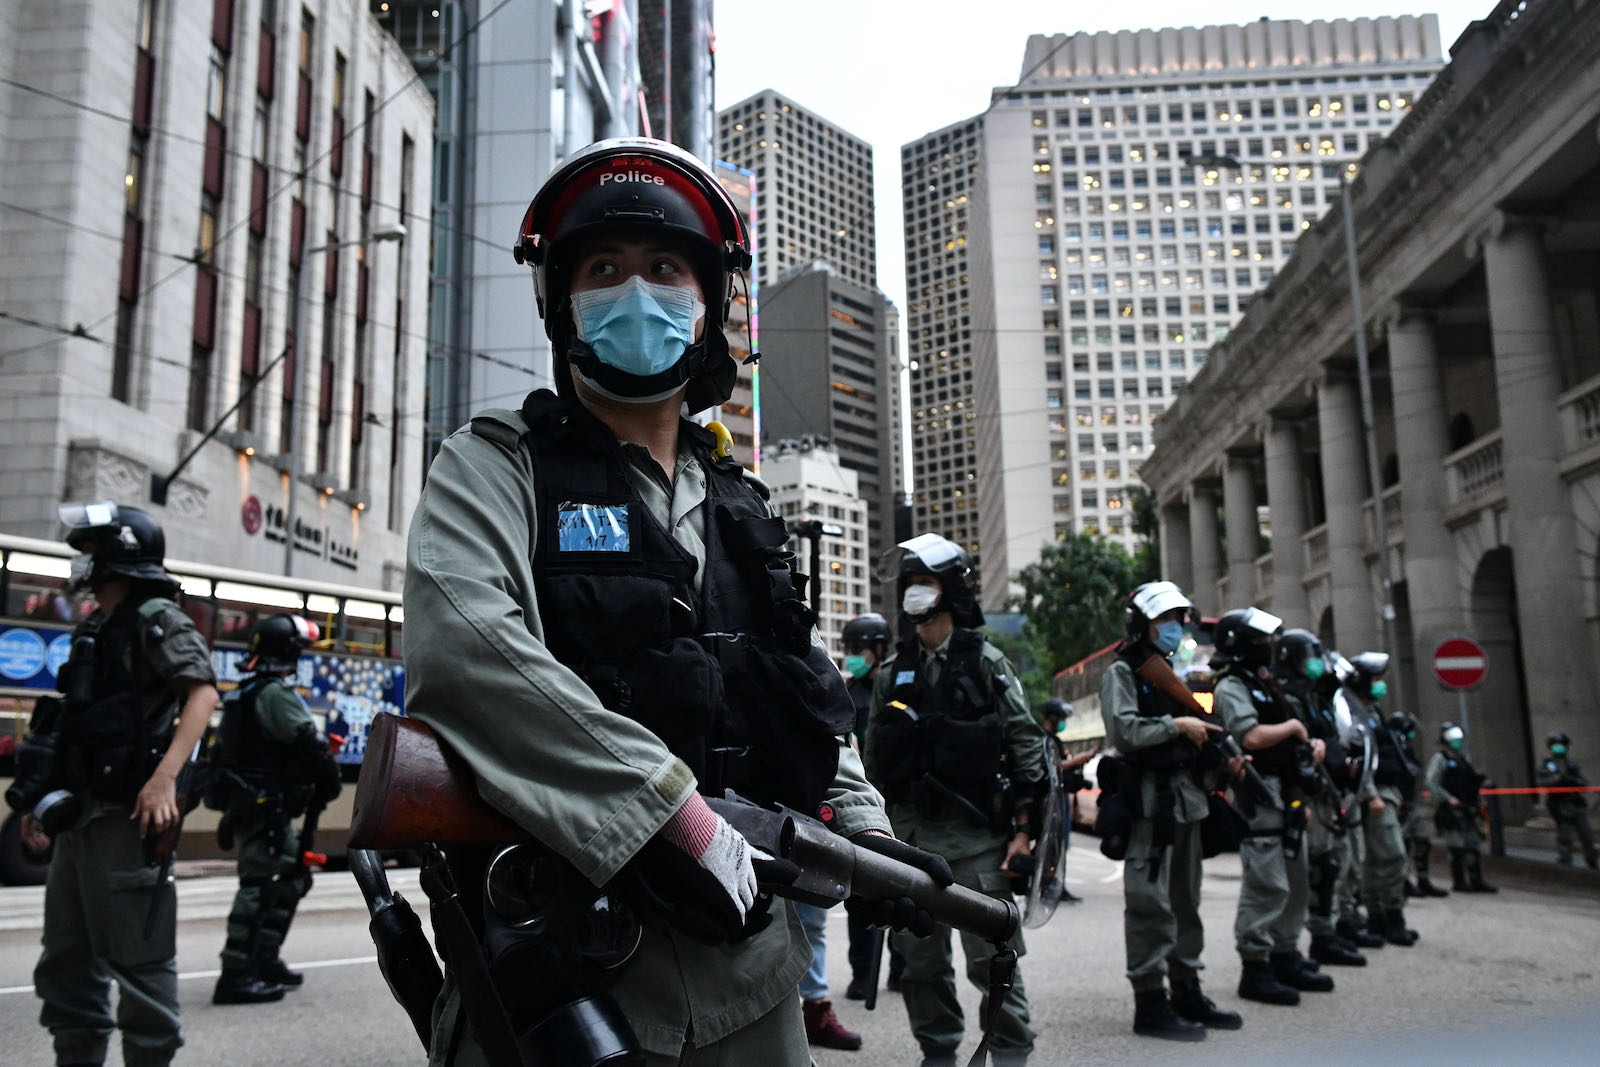 Riot police officers standing guard